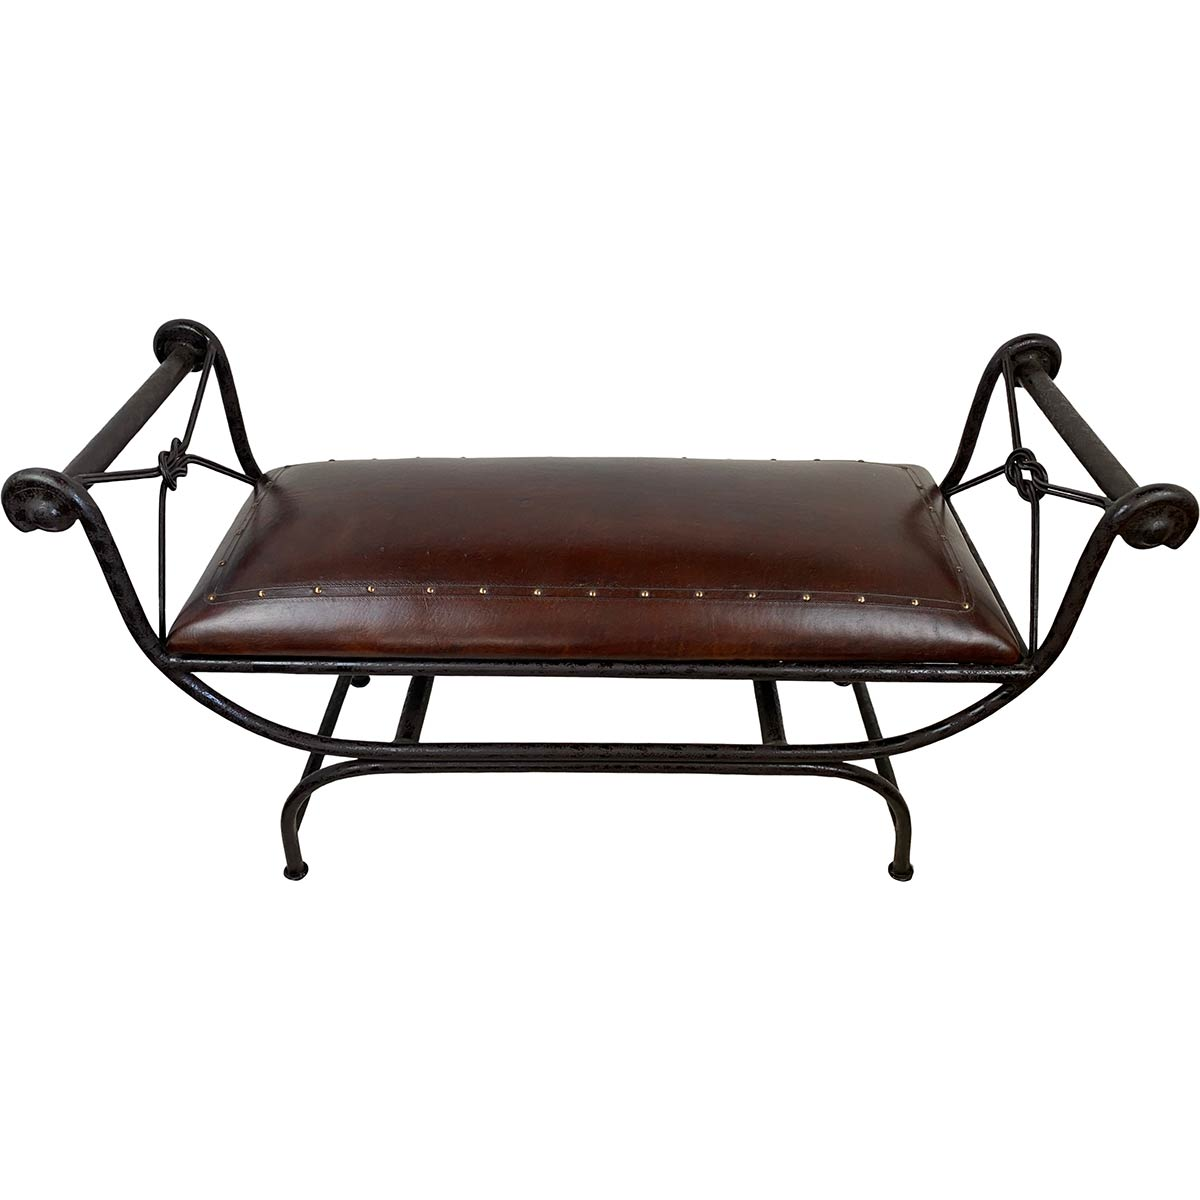 Double Vanity Bench with Tacks - Antique Brown